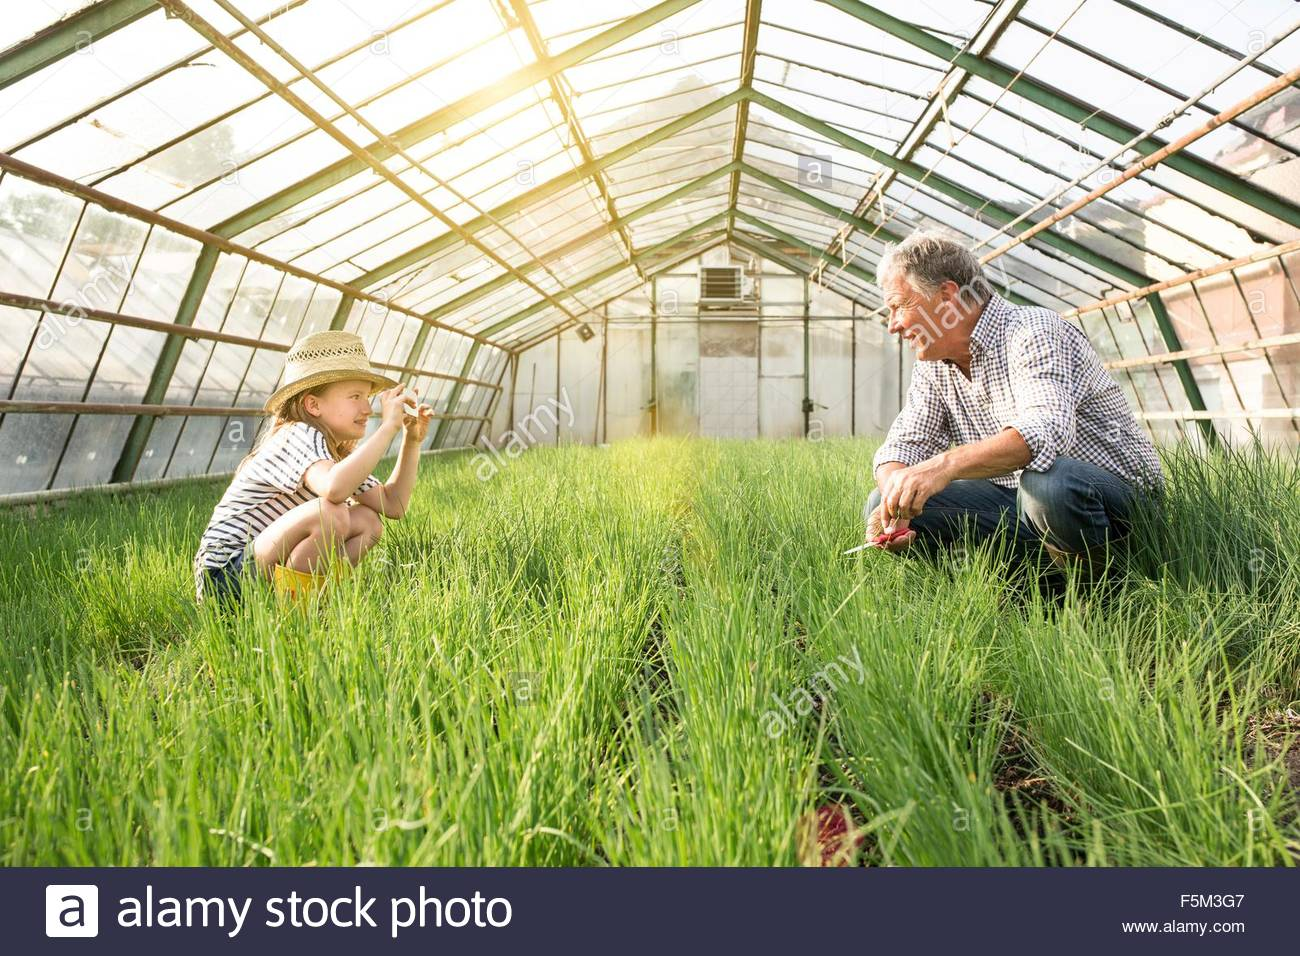 Granddaughter using smartphone to take photograph of grandfather in hothouse full of chives - Stock Image